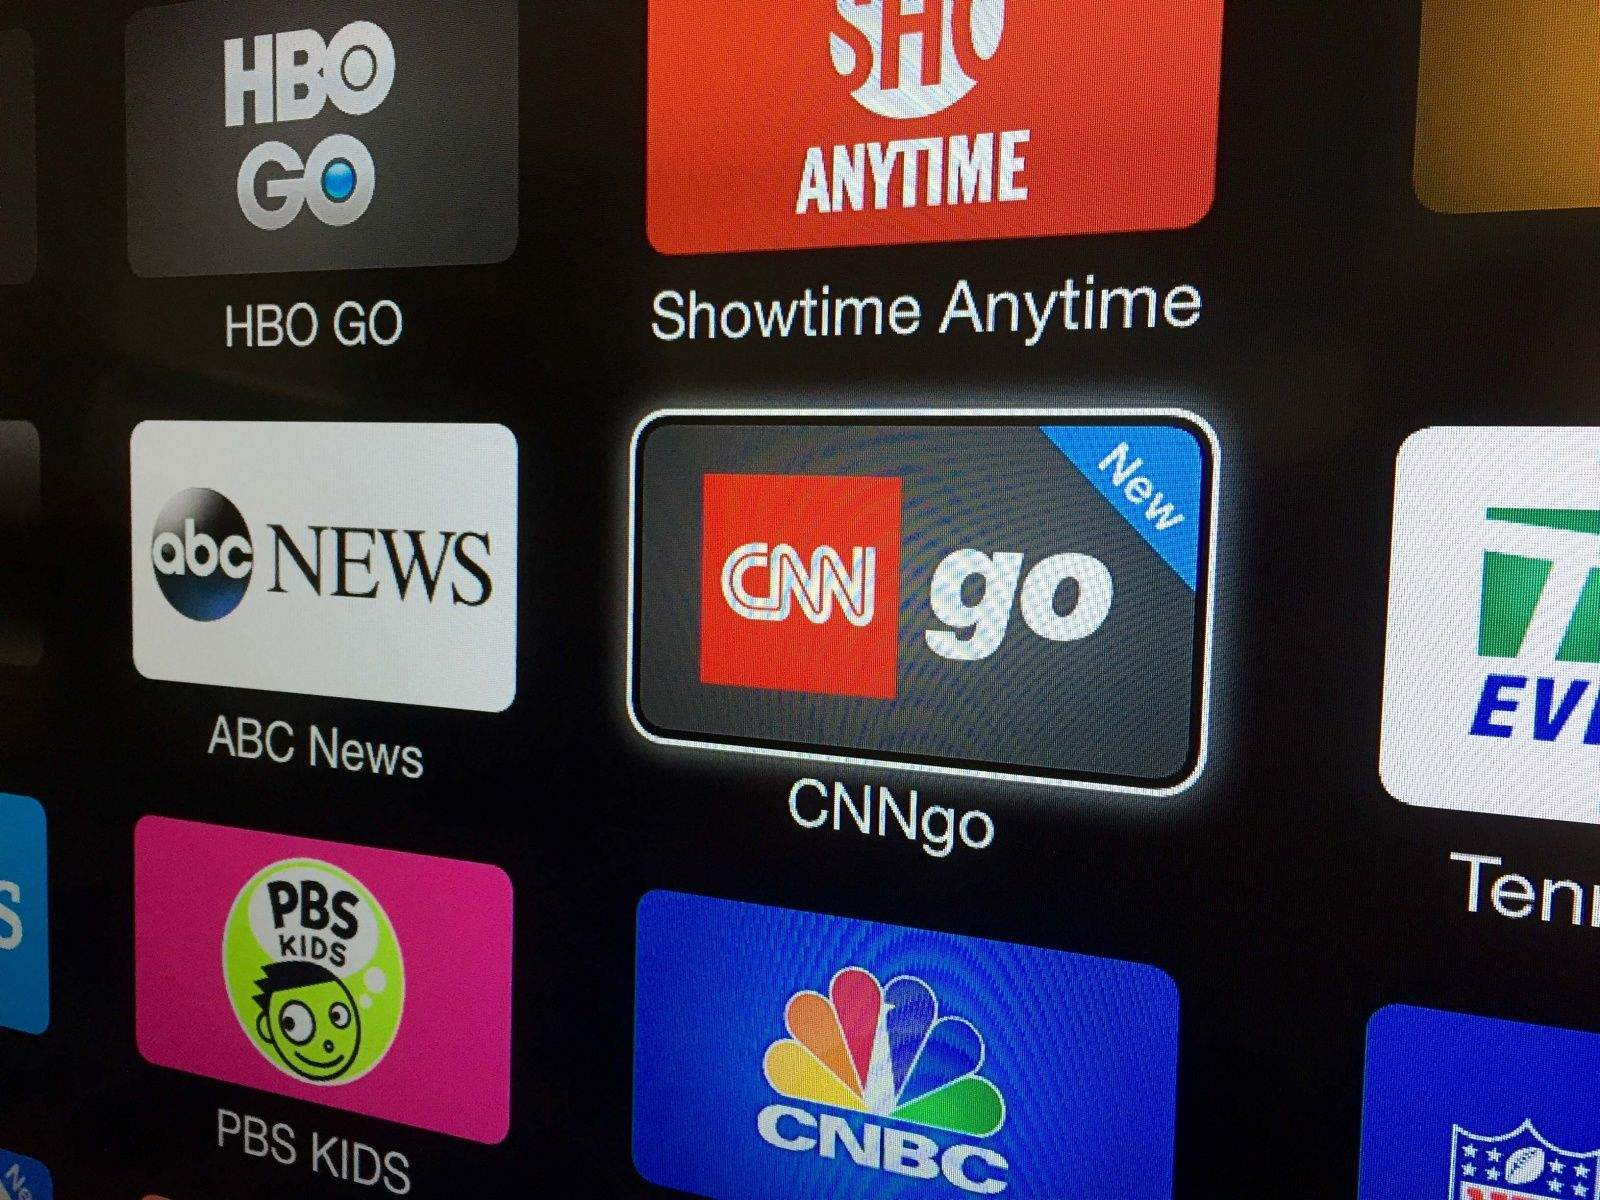 Apple's forthcoming service would unify top TV networks into one package. Photo: Alex Heath/ Cult of Mac